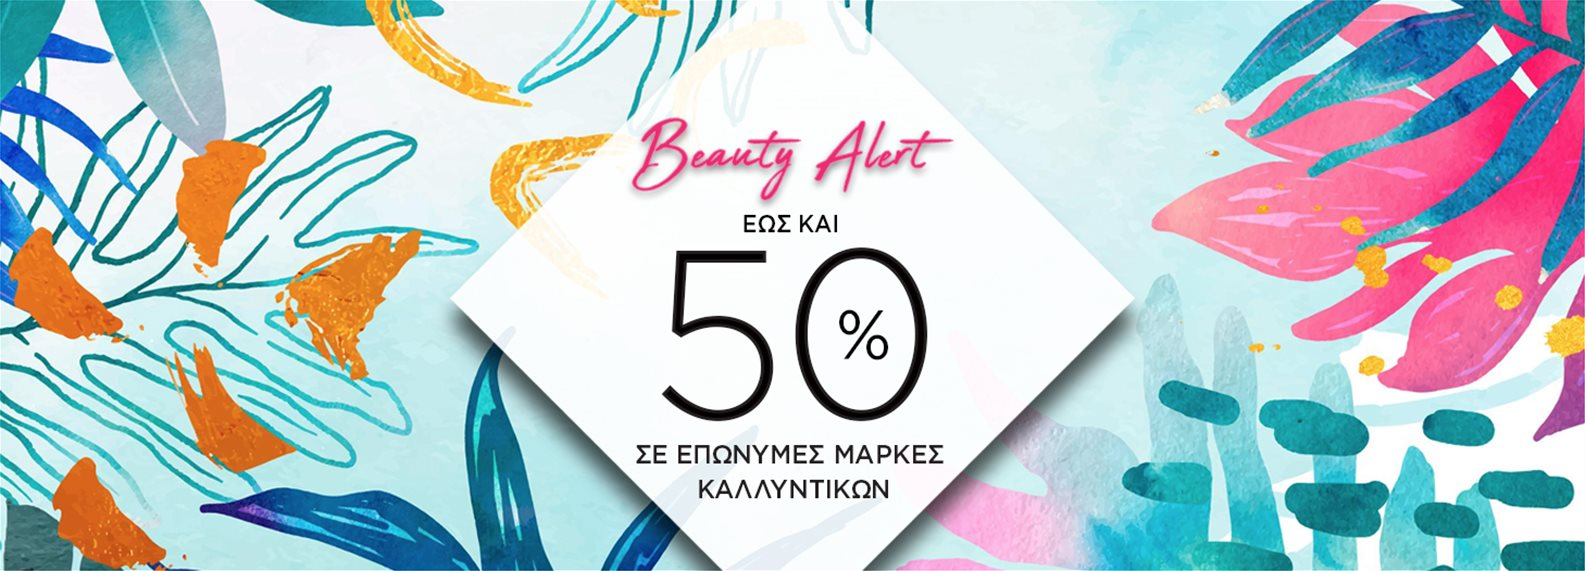 BEAUTY ALERT UP TO 50%! image